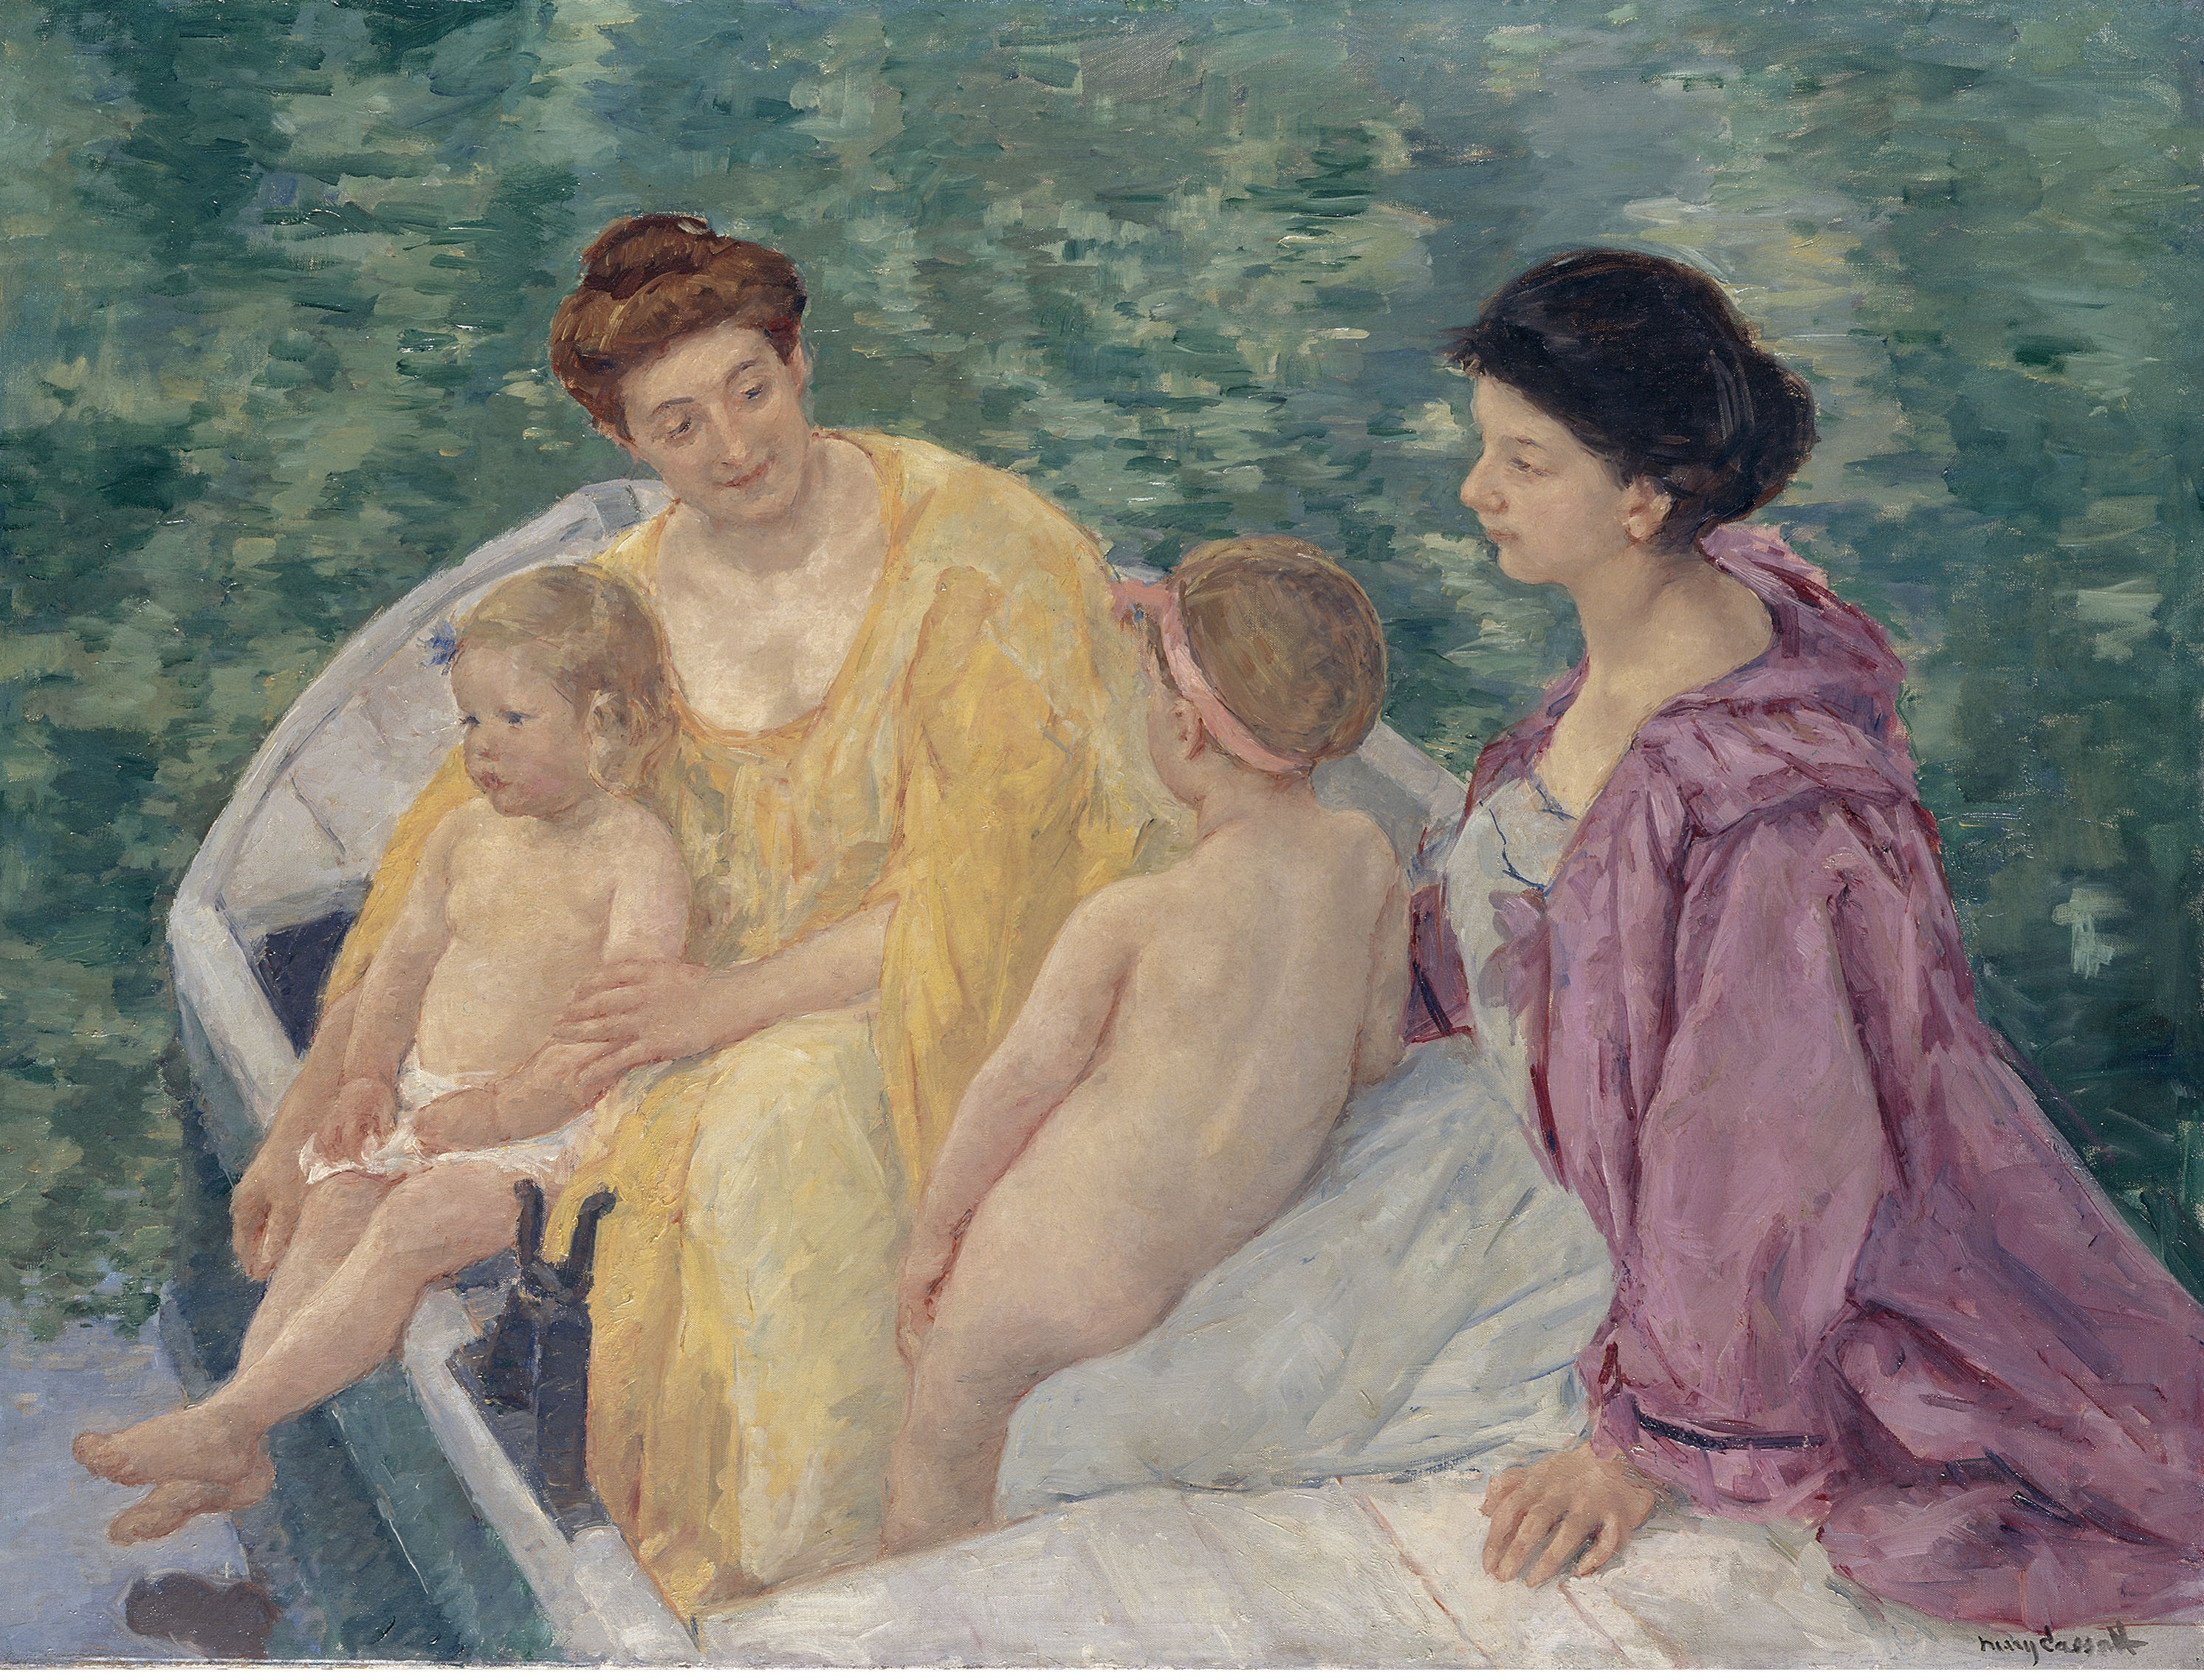 Mary Cassatt - Le Bain (Two mothers and their children in a boat)